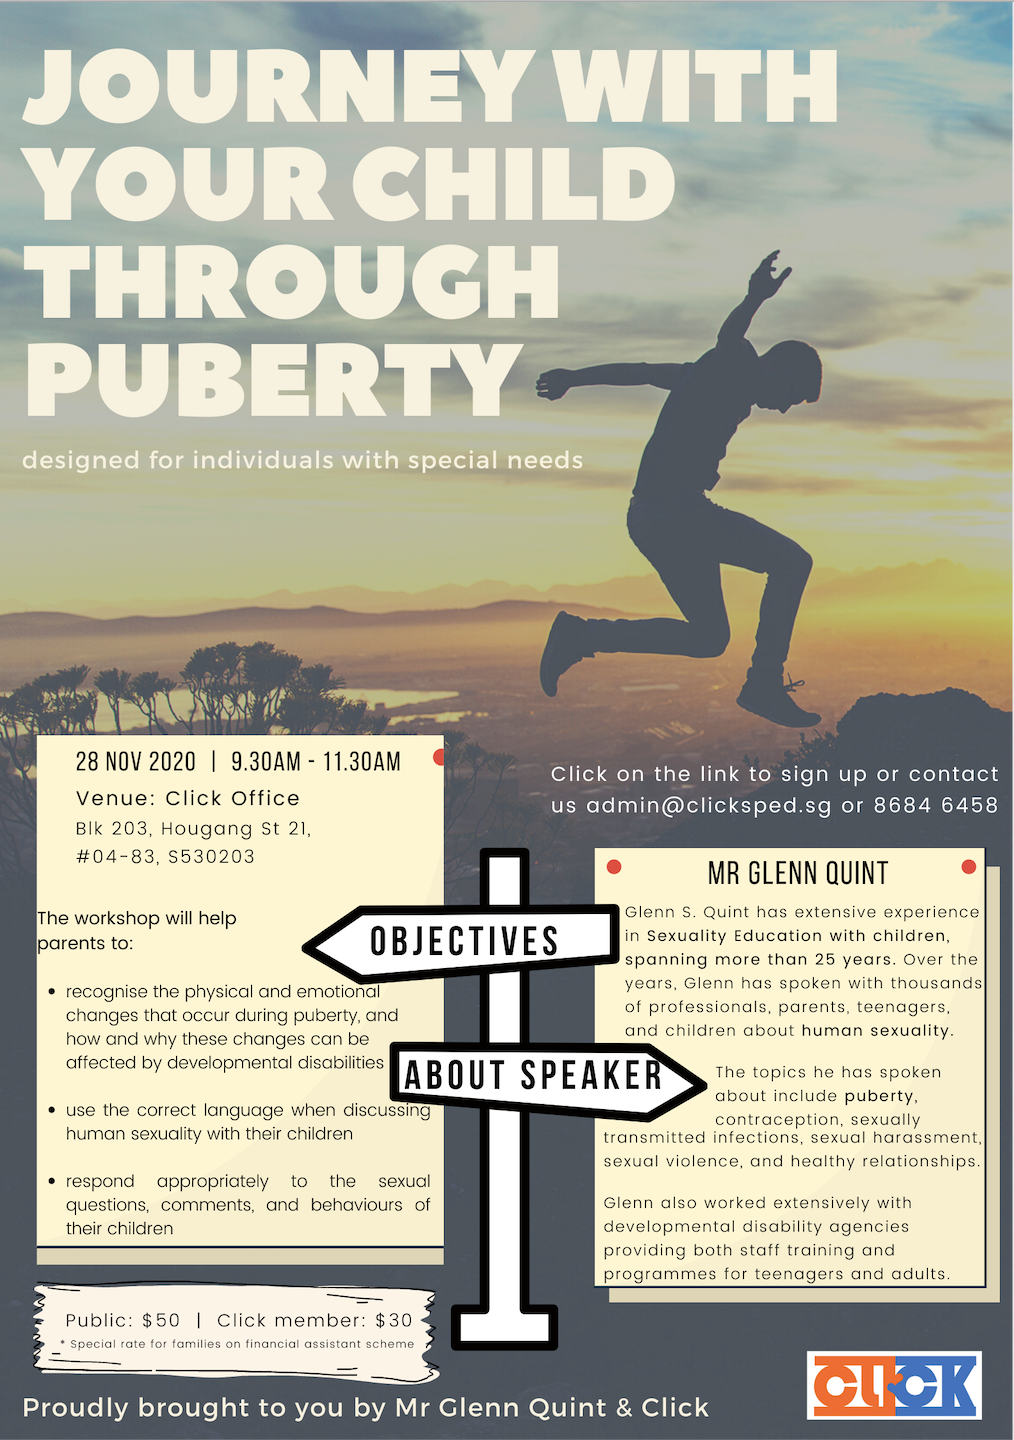 Journey With Your Child Through Puberty